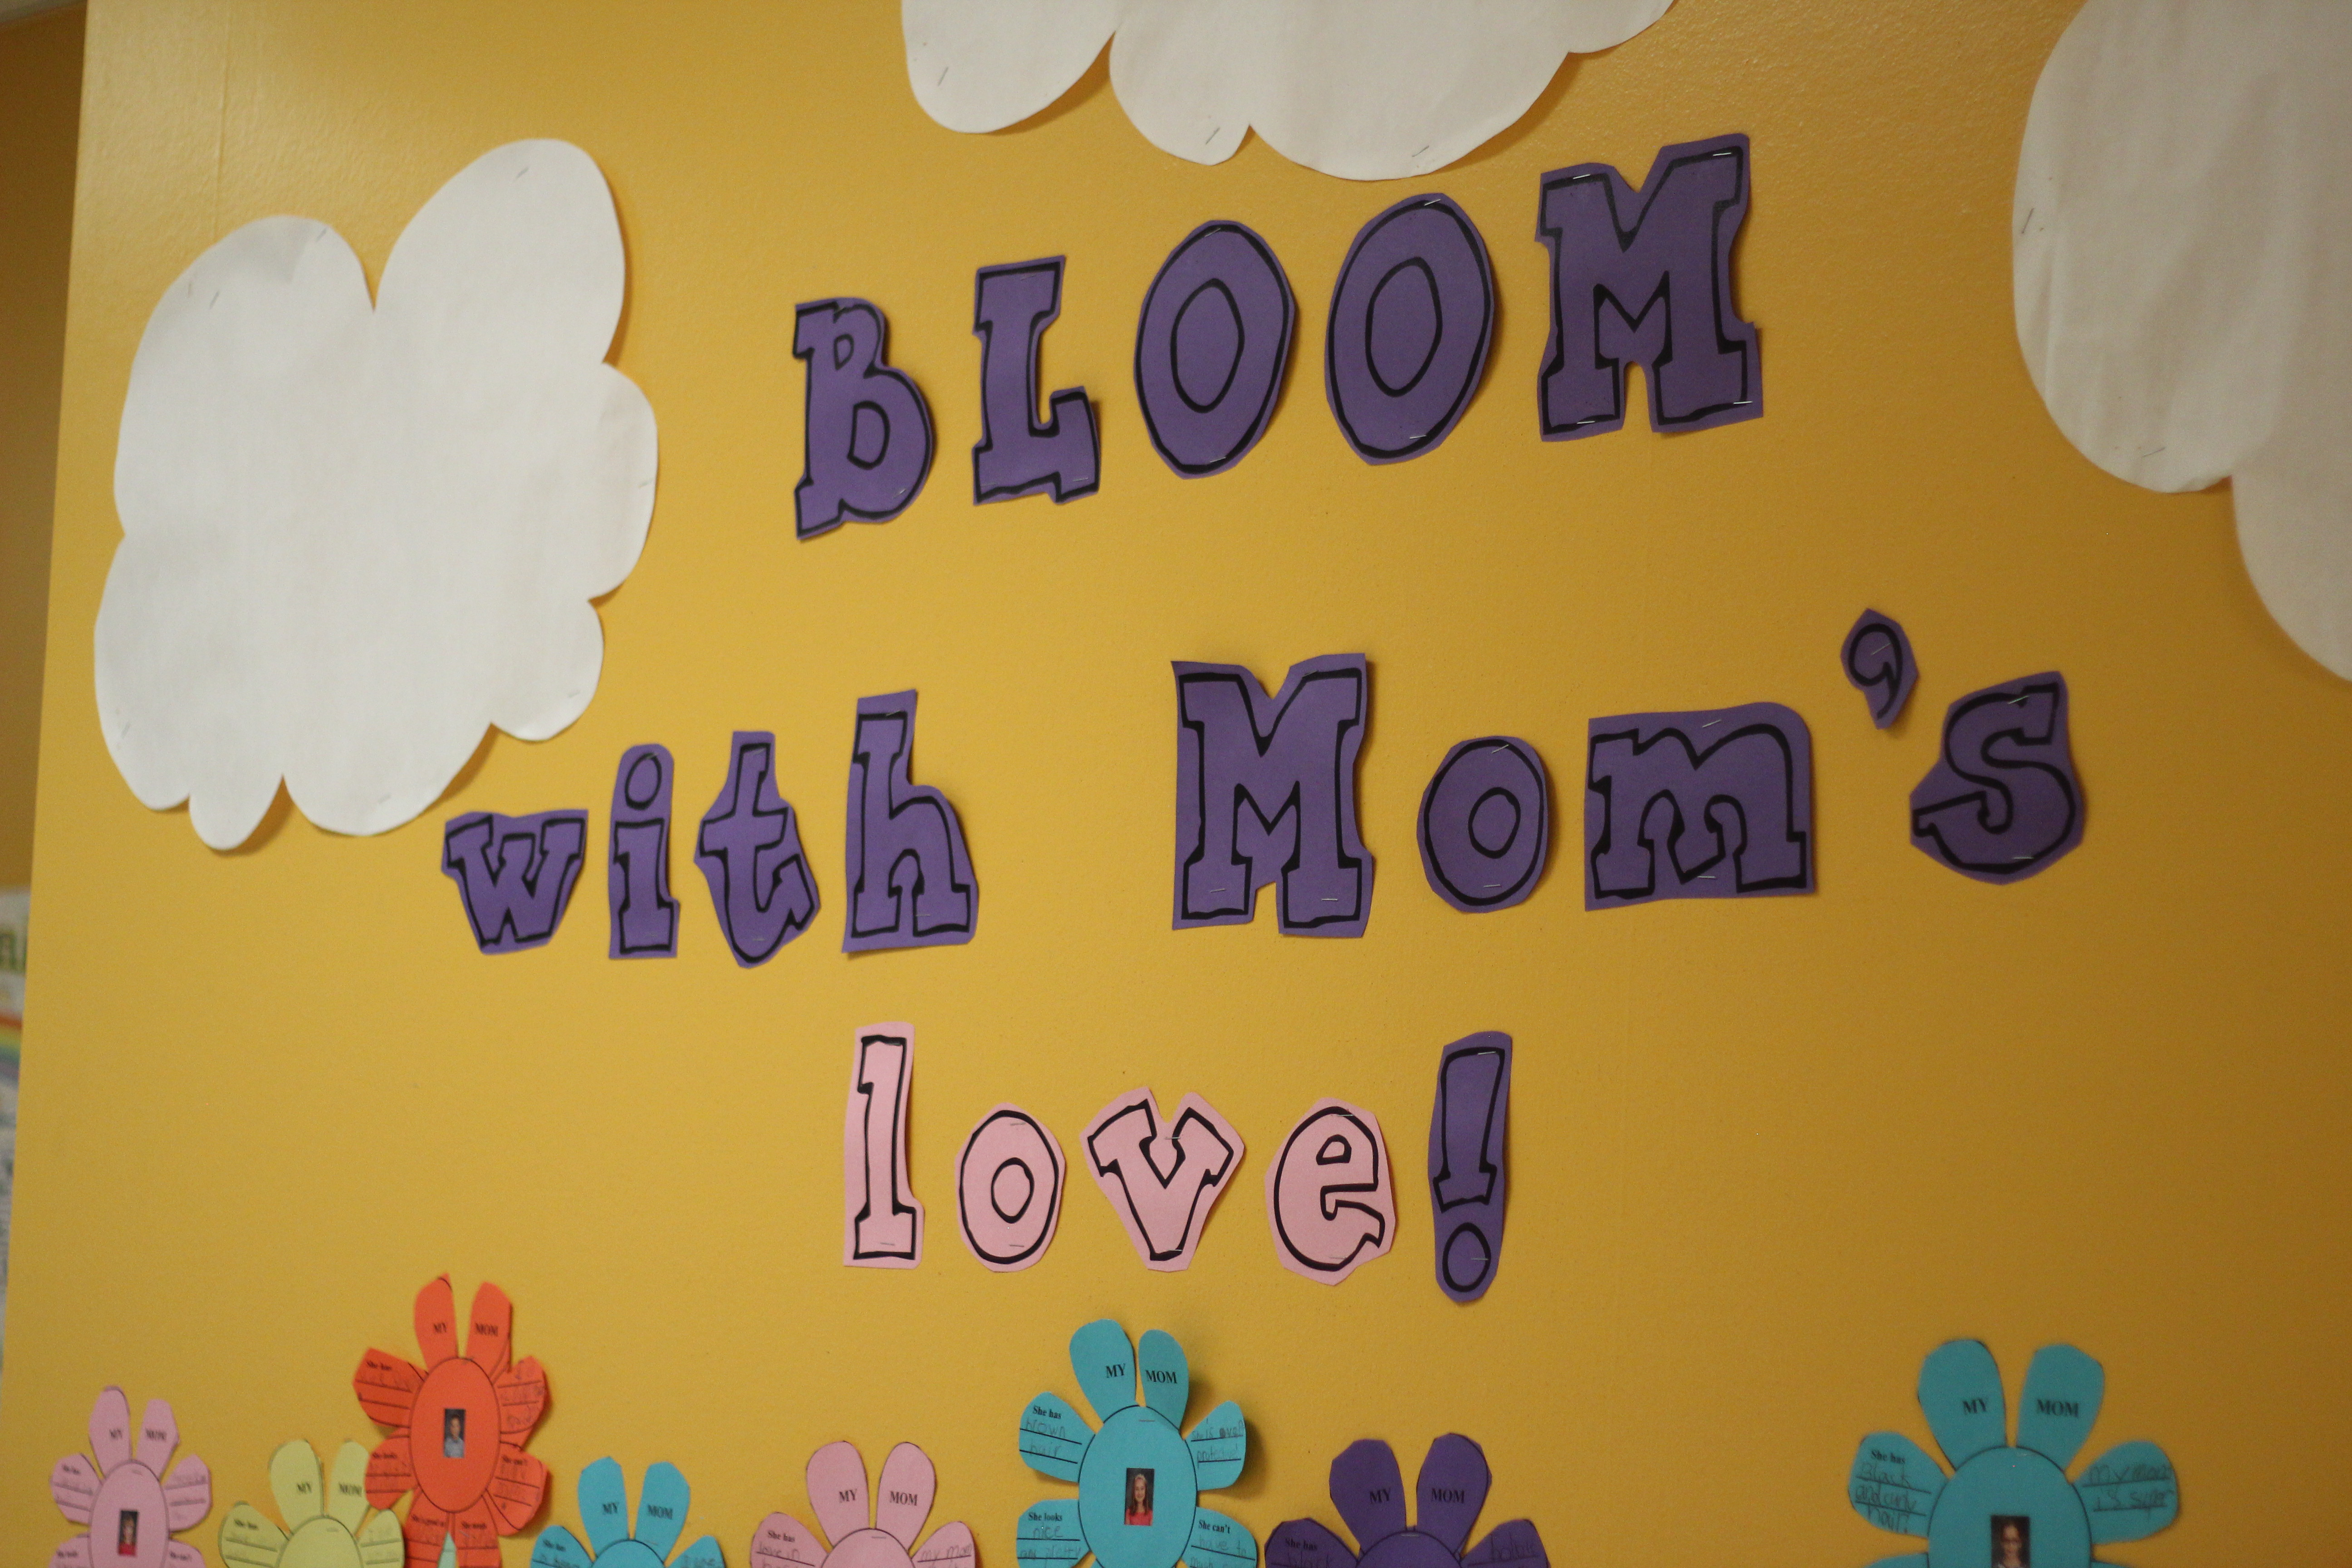 Mother's Day artwork hangs on the wall.